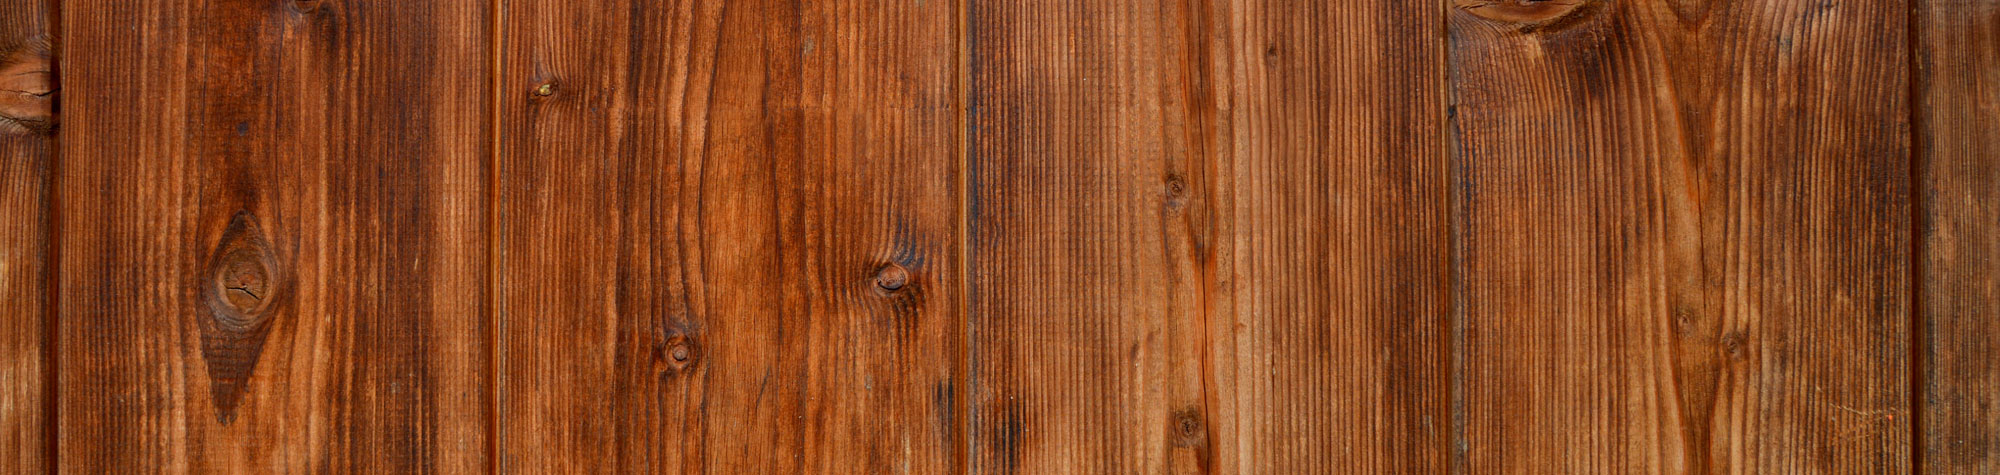 Types Of Wood Guide To Choose The Best